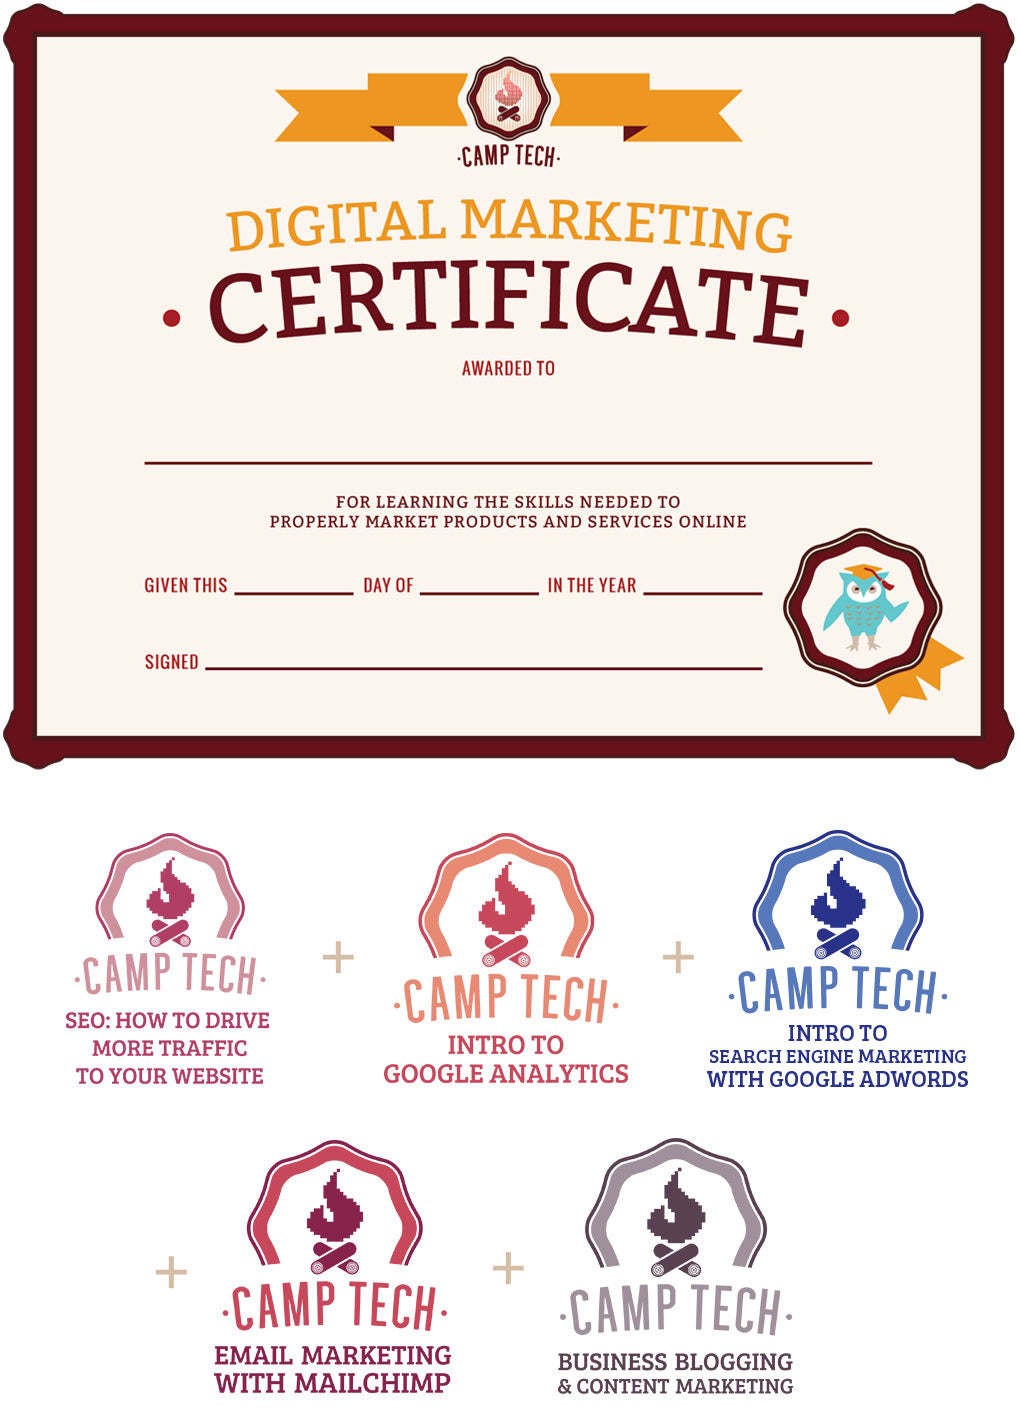 Digital Marketing Certificate and Badges